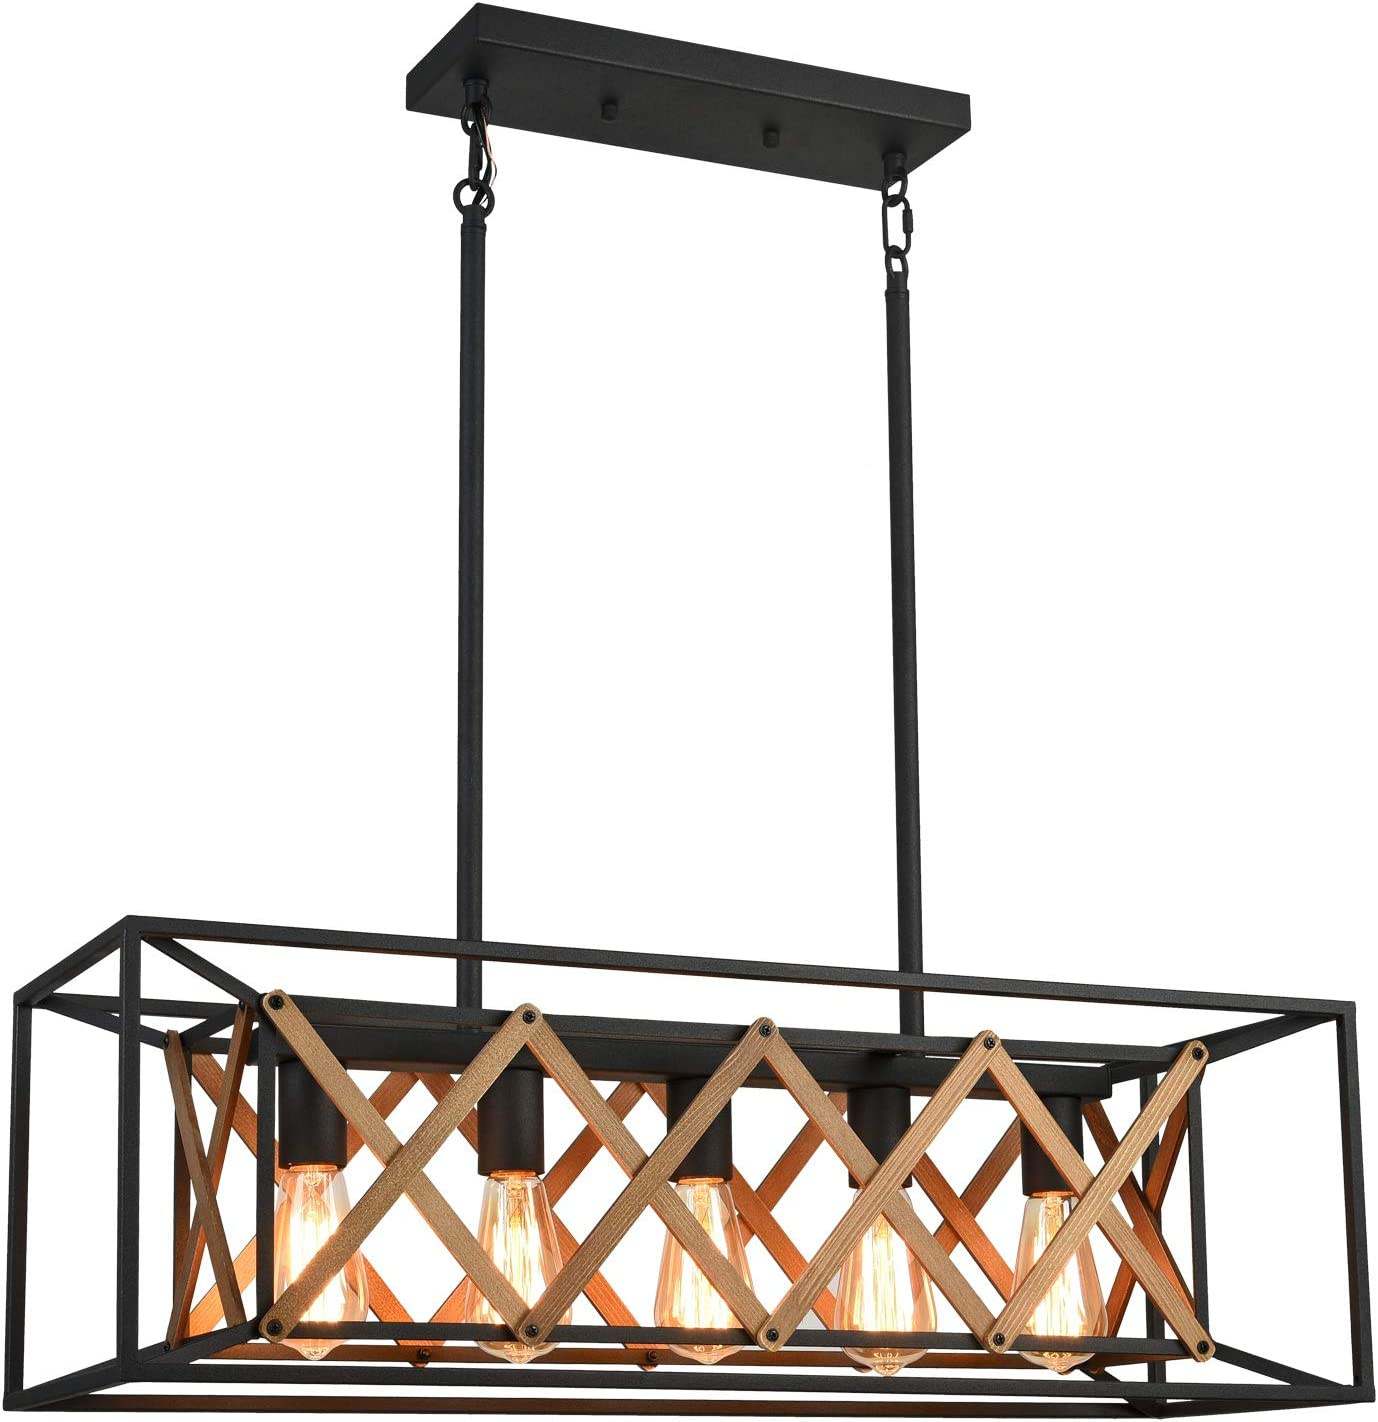 Farmhouse Chandelier Kitchen Island Lighting Fixtures 5 Lights Rustic Light for Dinning Room, Sand Black Finish DOHOMER